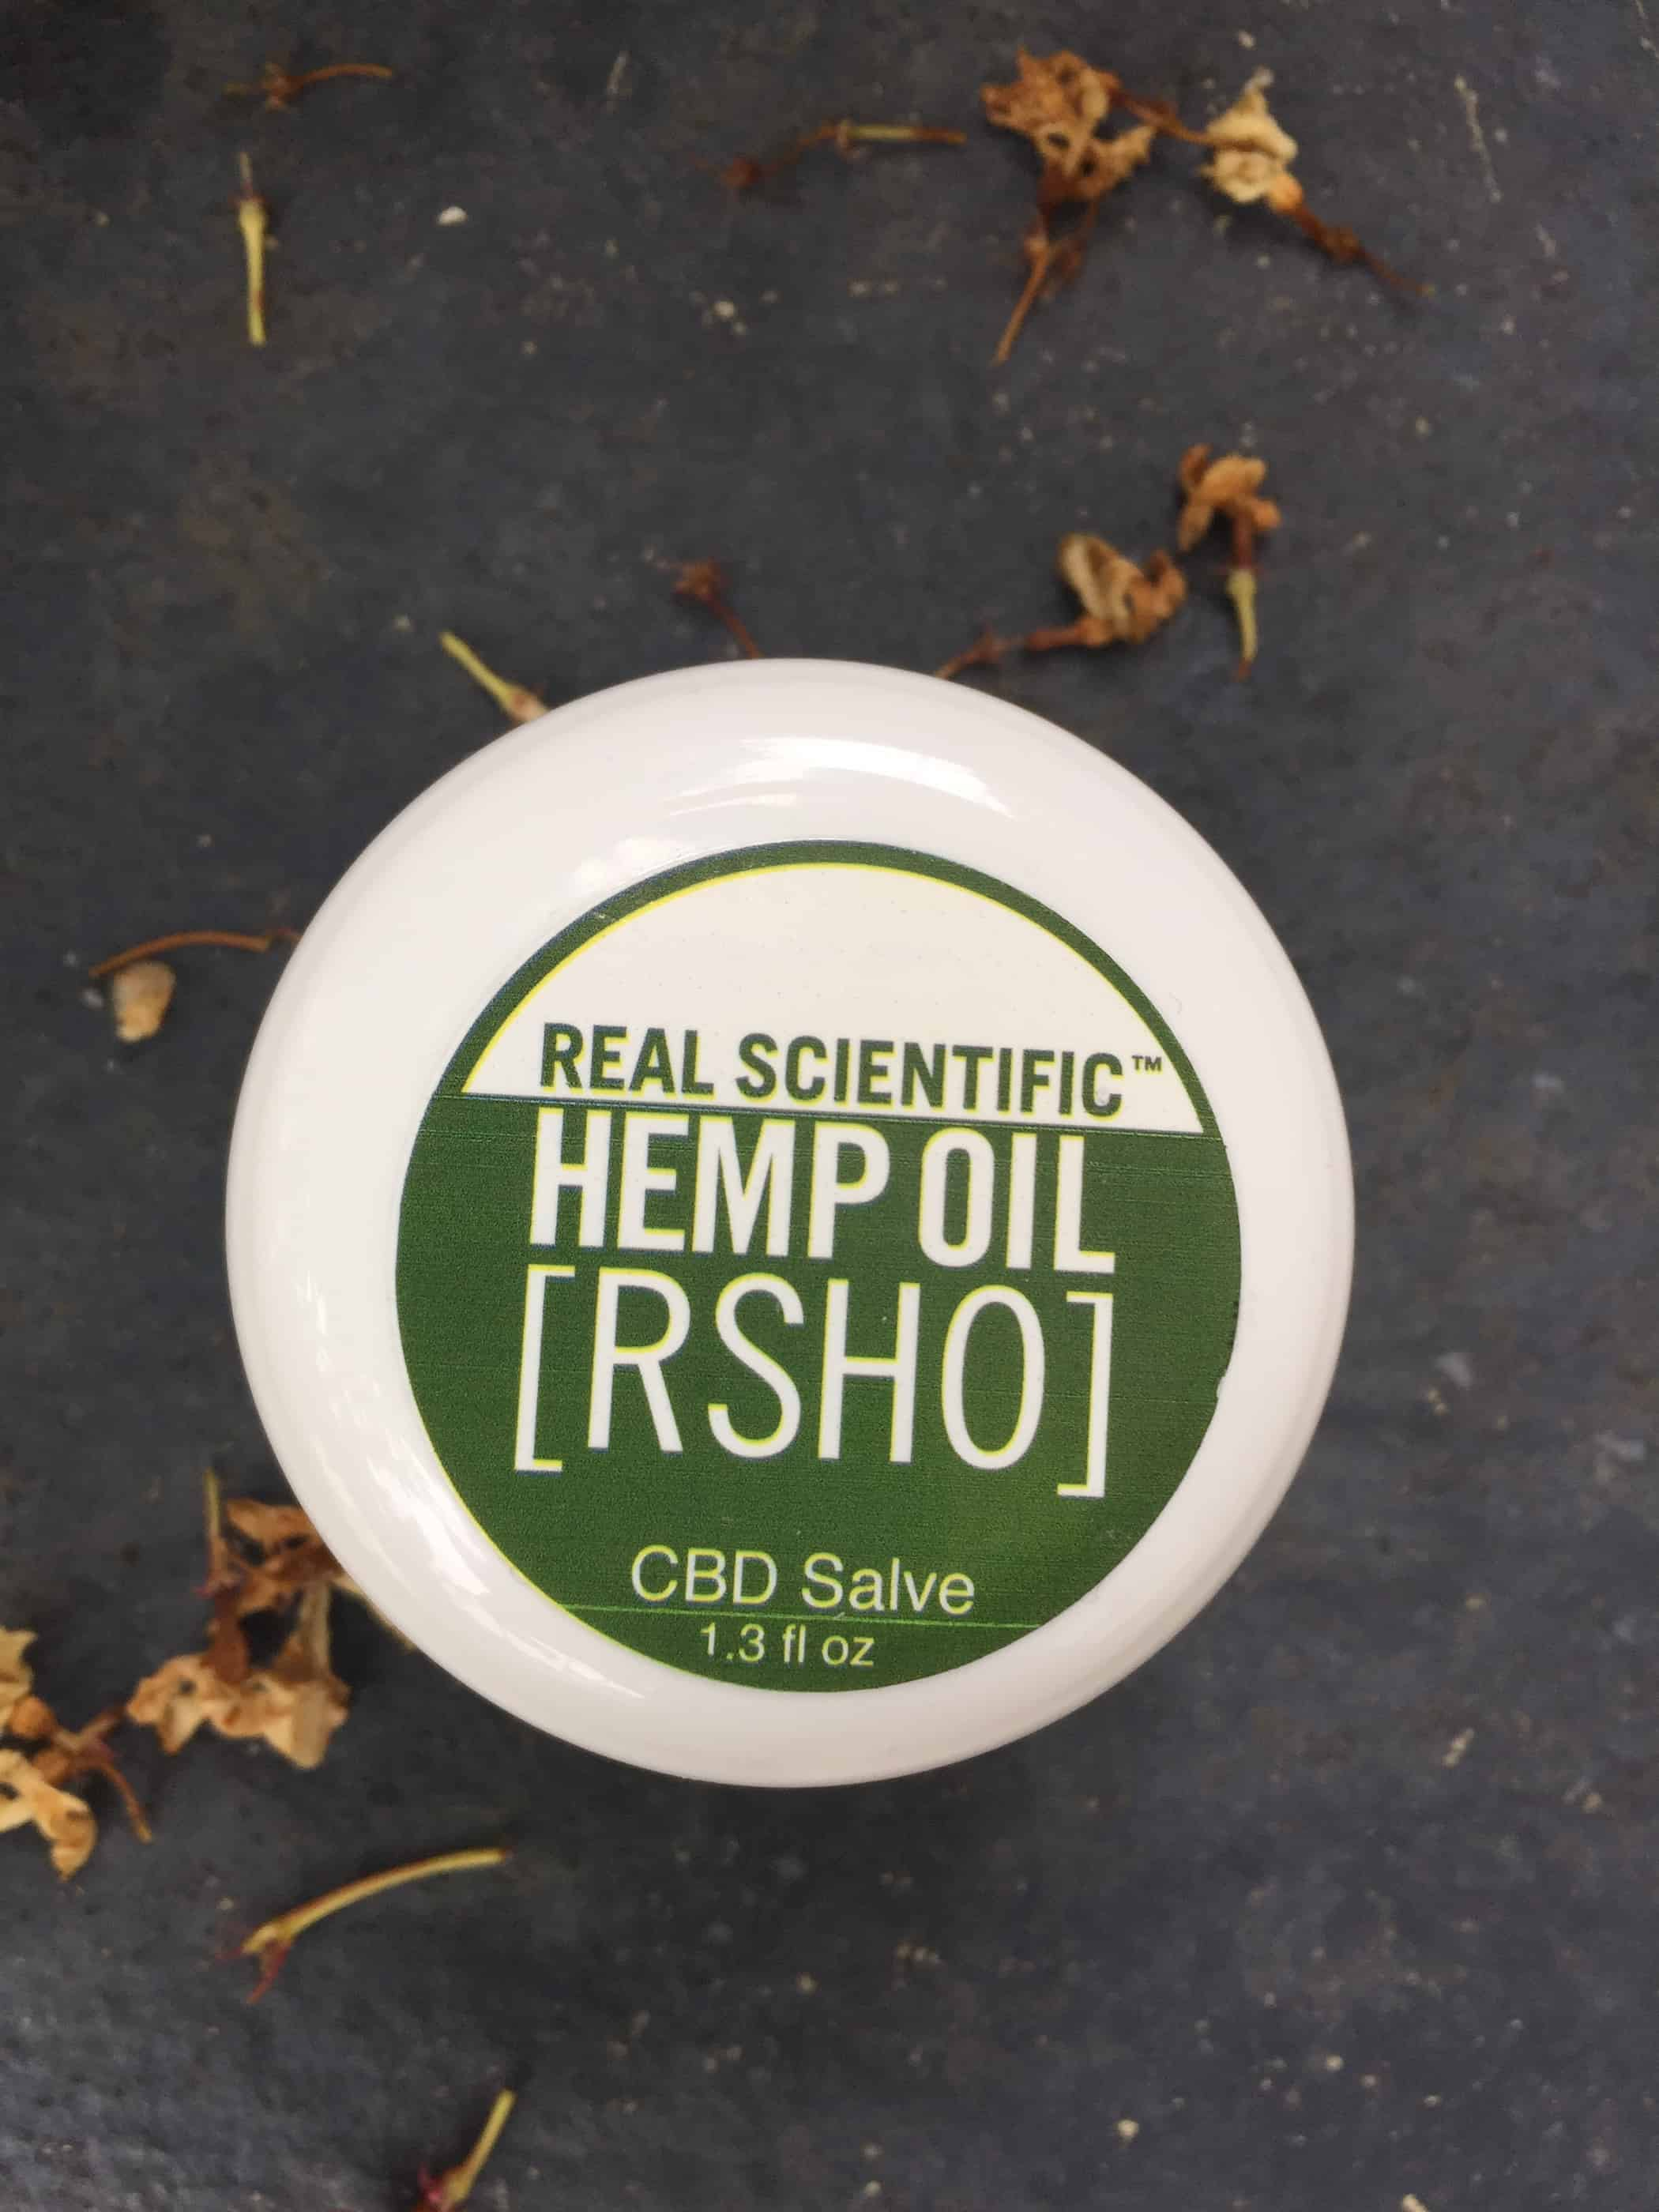 real scientific hemp oil cbd salve save on cannabis review